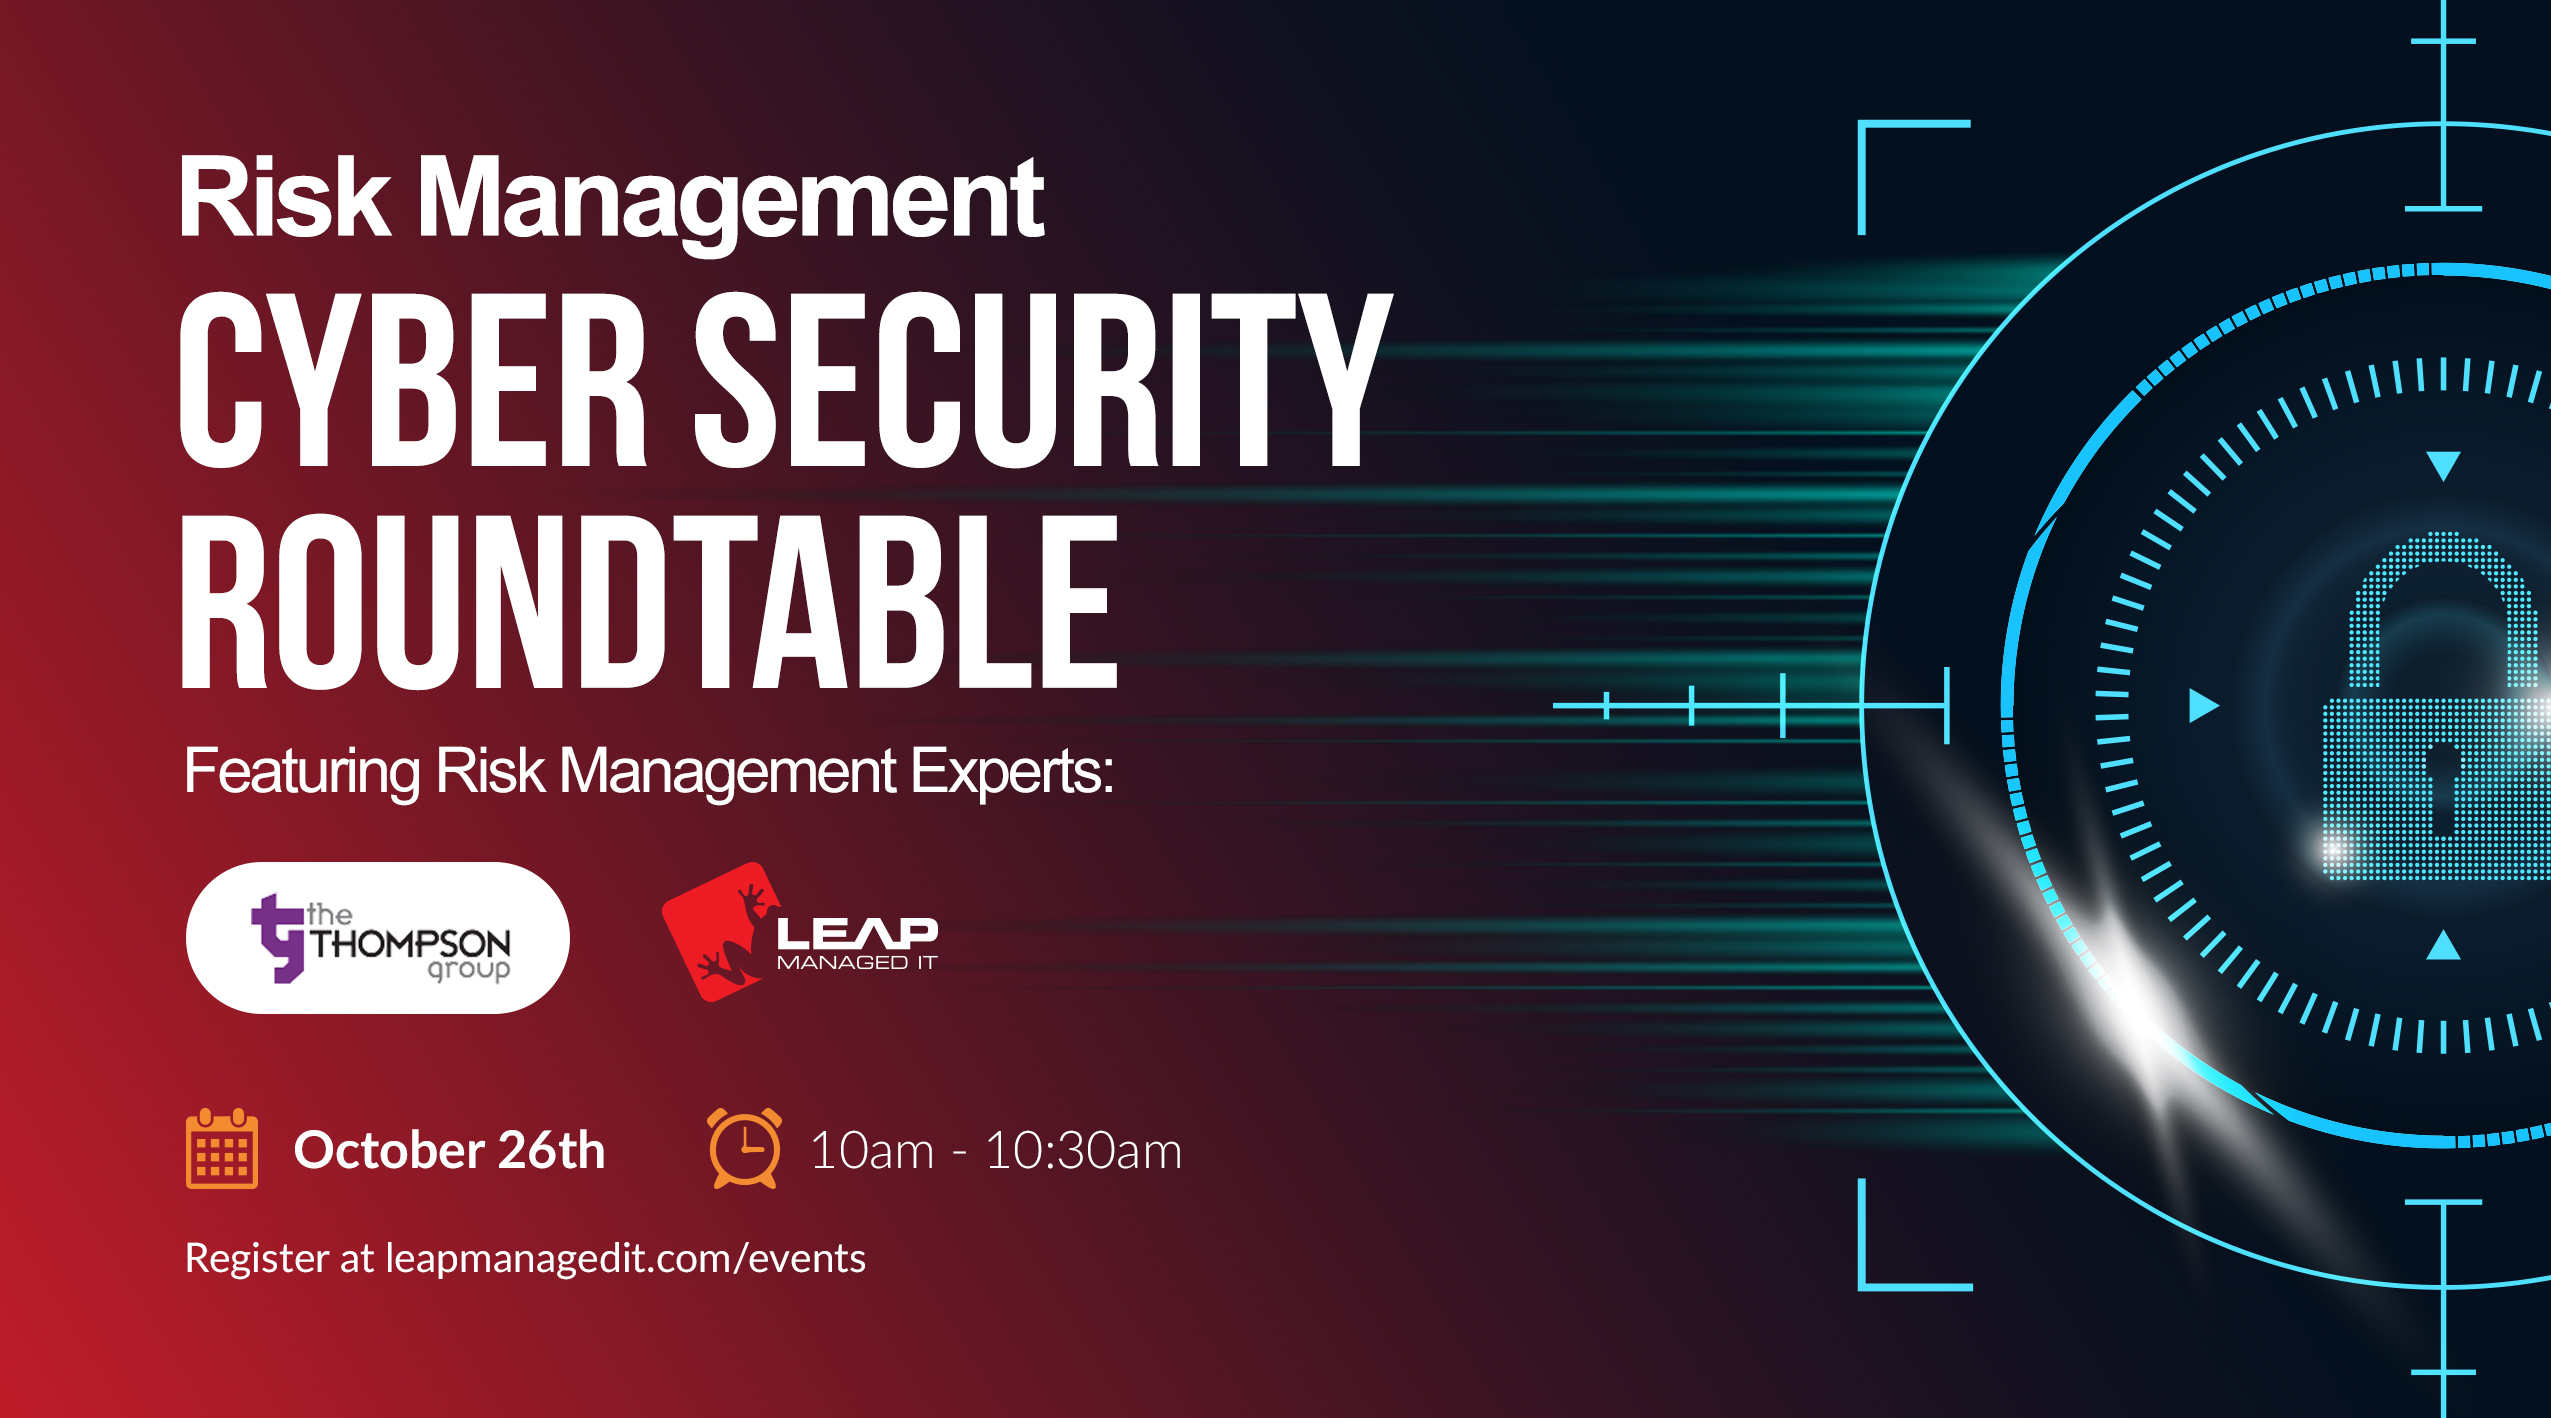 Cyber Security and Risk Management